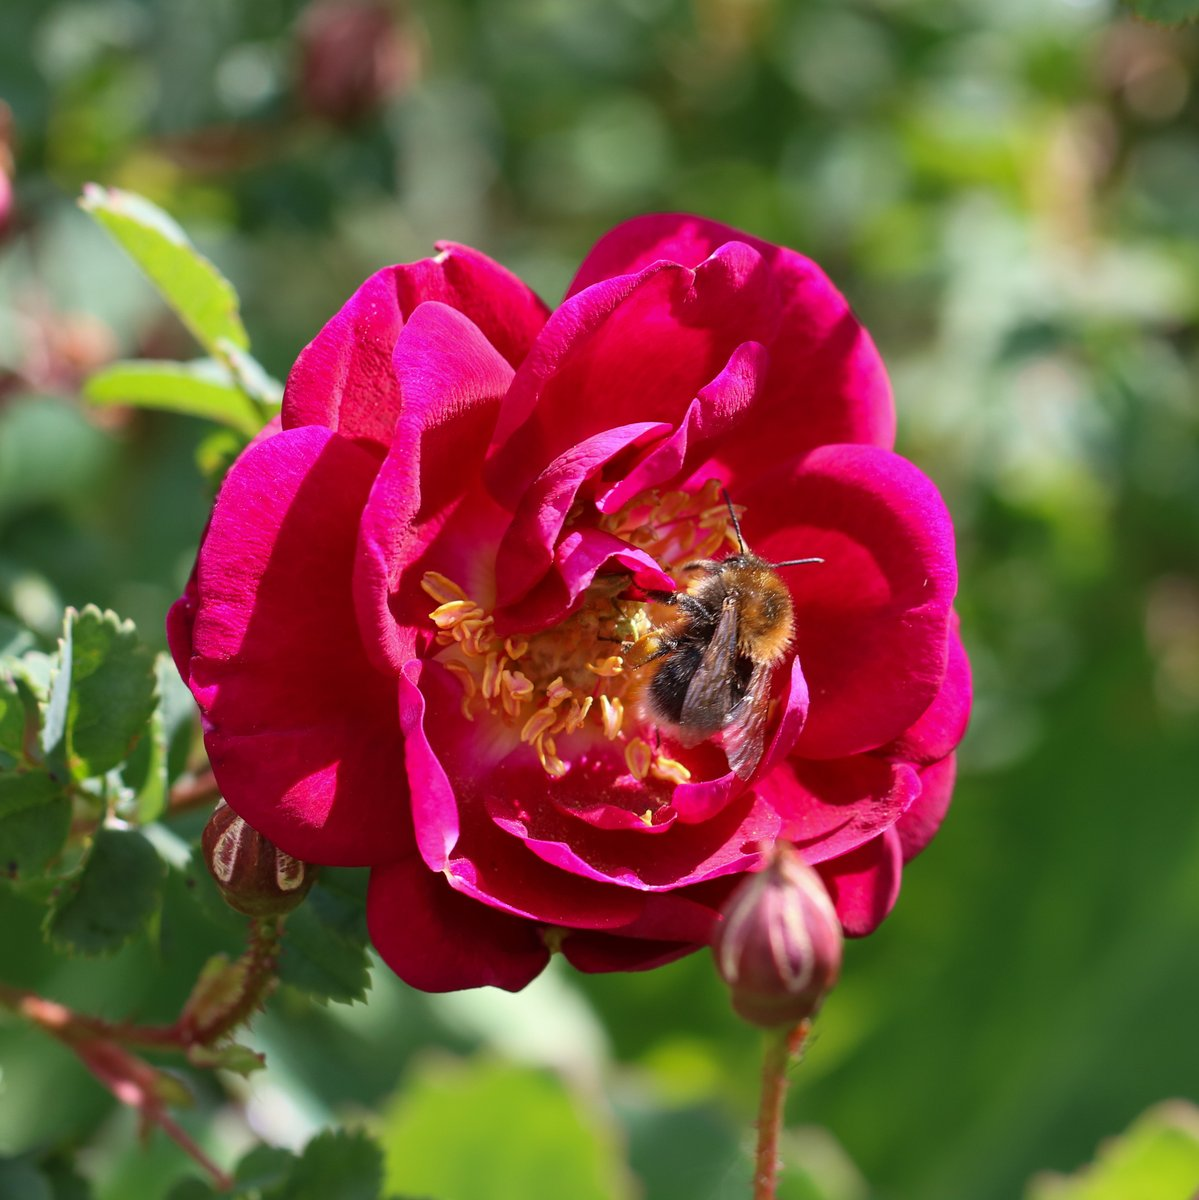 A rose for #RoseWednesday  The bee is a bonus 🐝 #Flowers #summertime